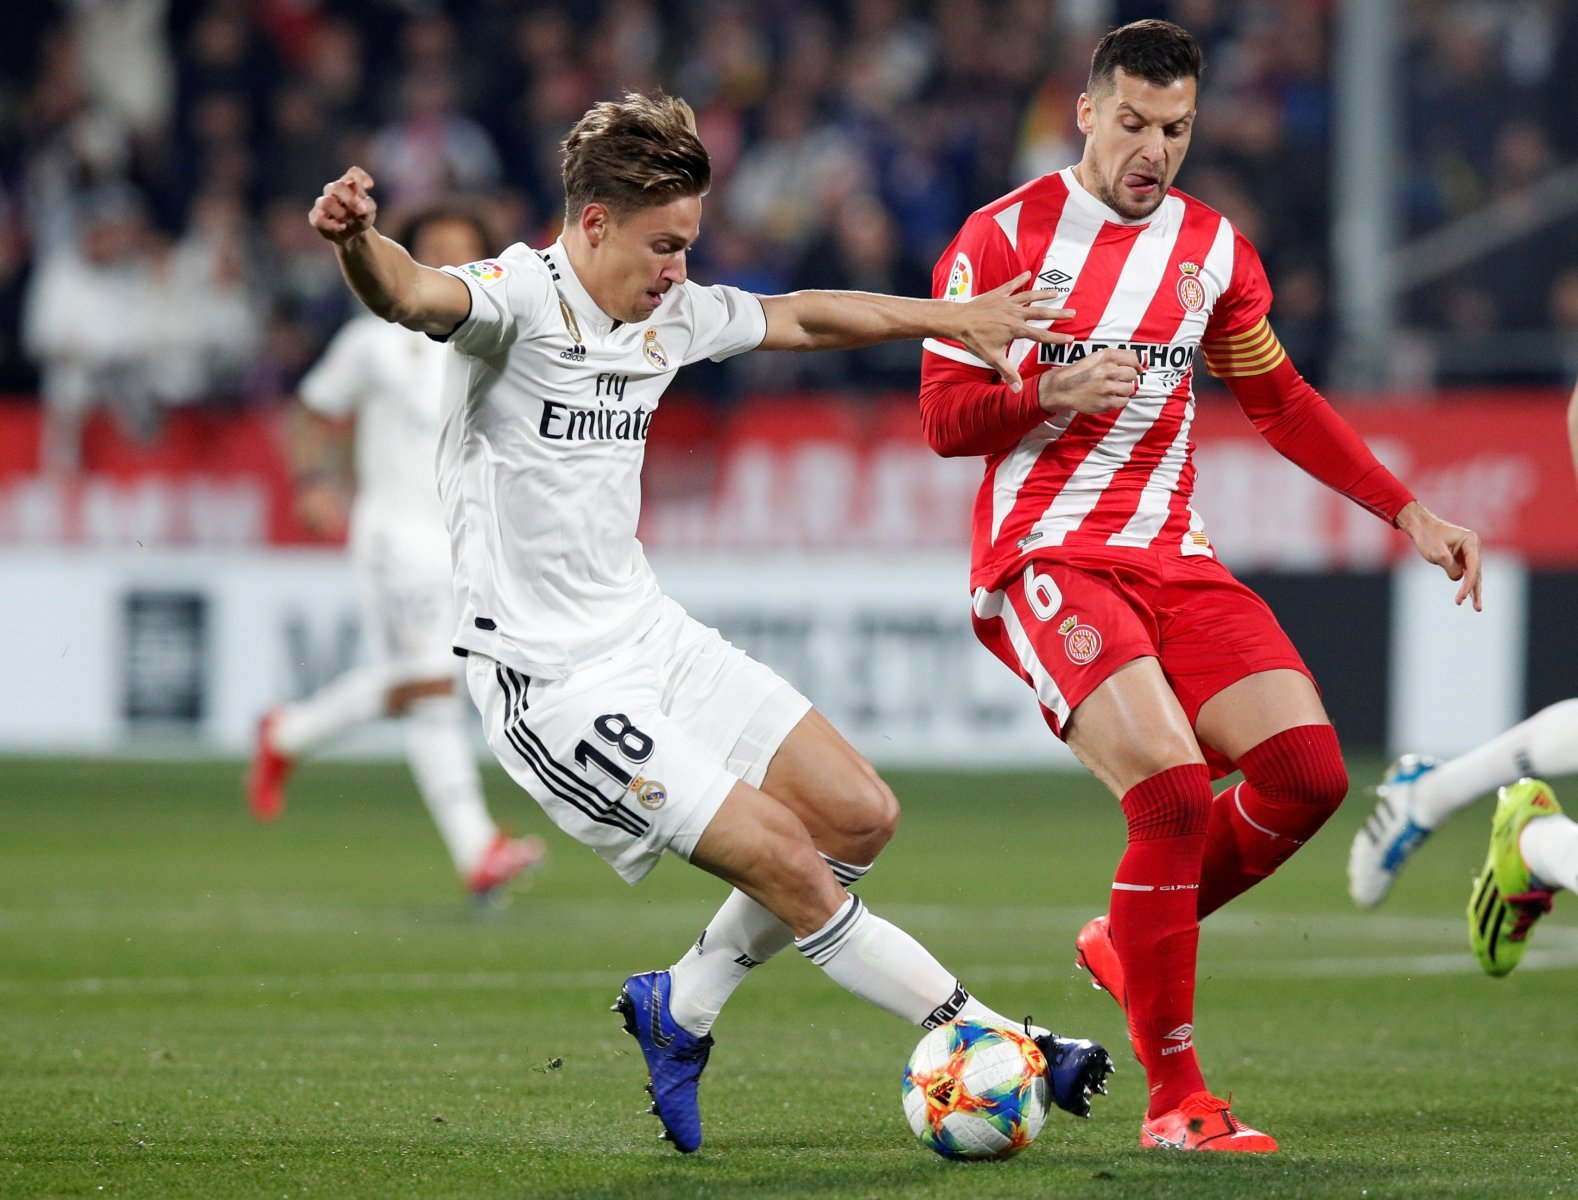 Marcos Llorente would prove a terrific option for Everton